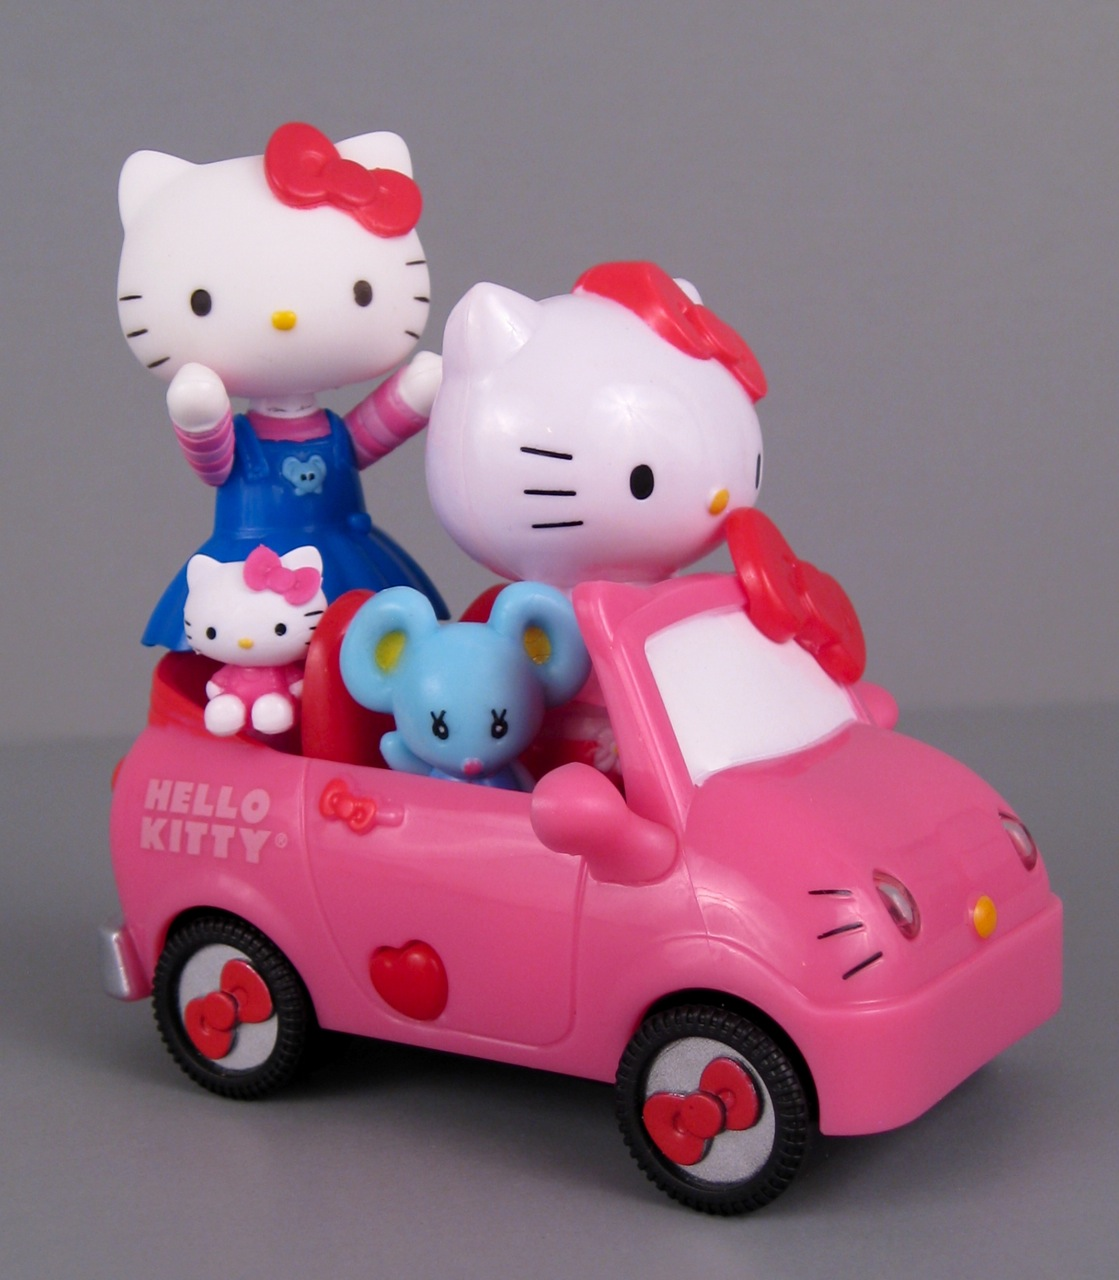 Hello Kitty Toys Set : Hello kitty mini dolls from jada toys and blip the